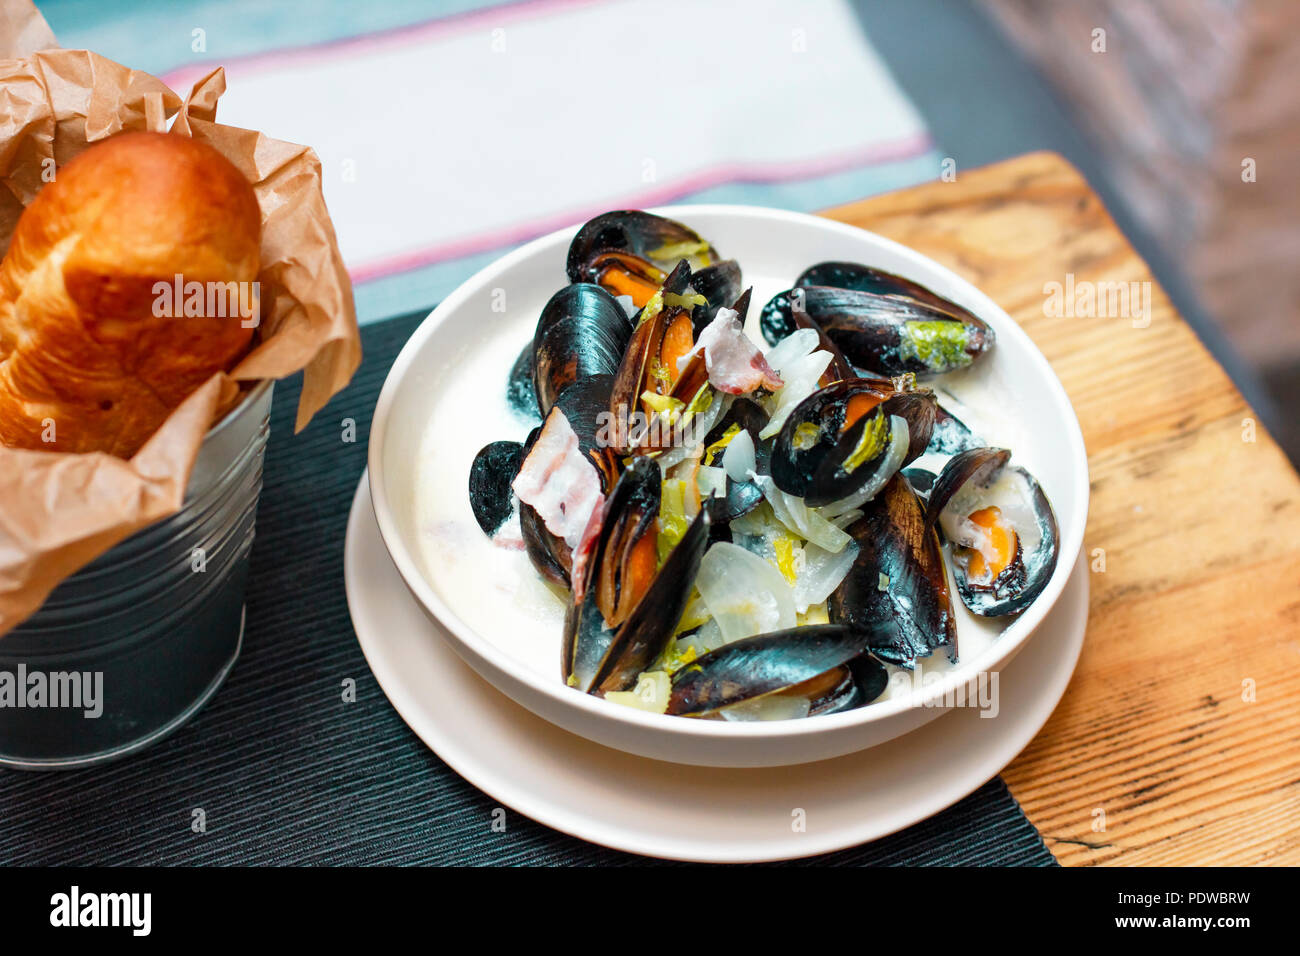 Mussels with onions and bacon in cream sauce in deep plate with bread on the table - Stock Image